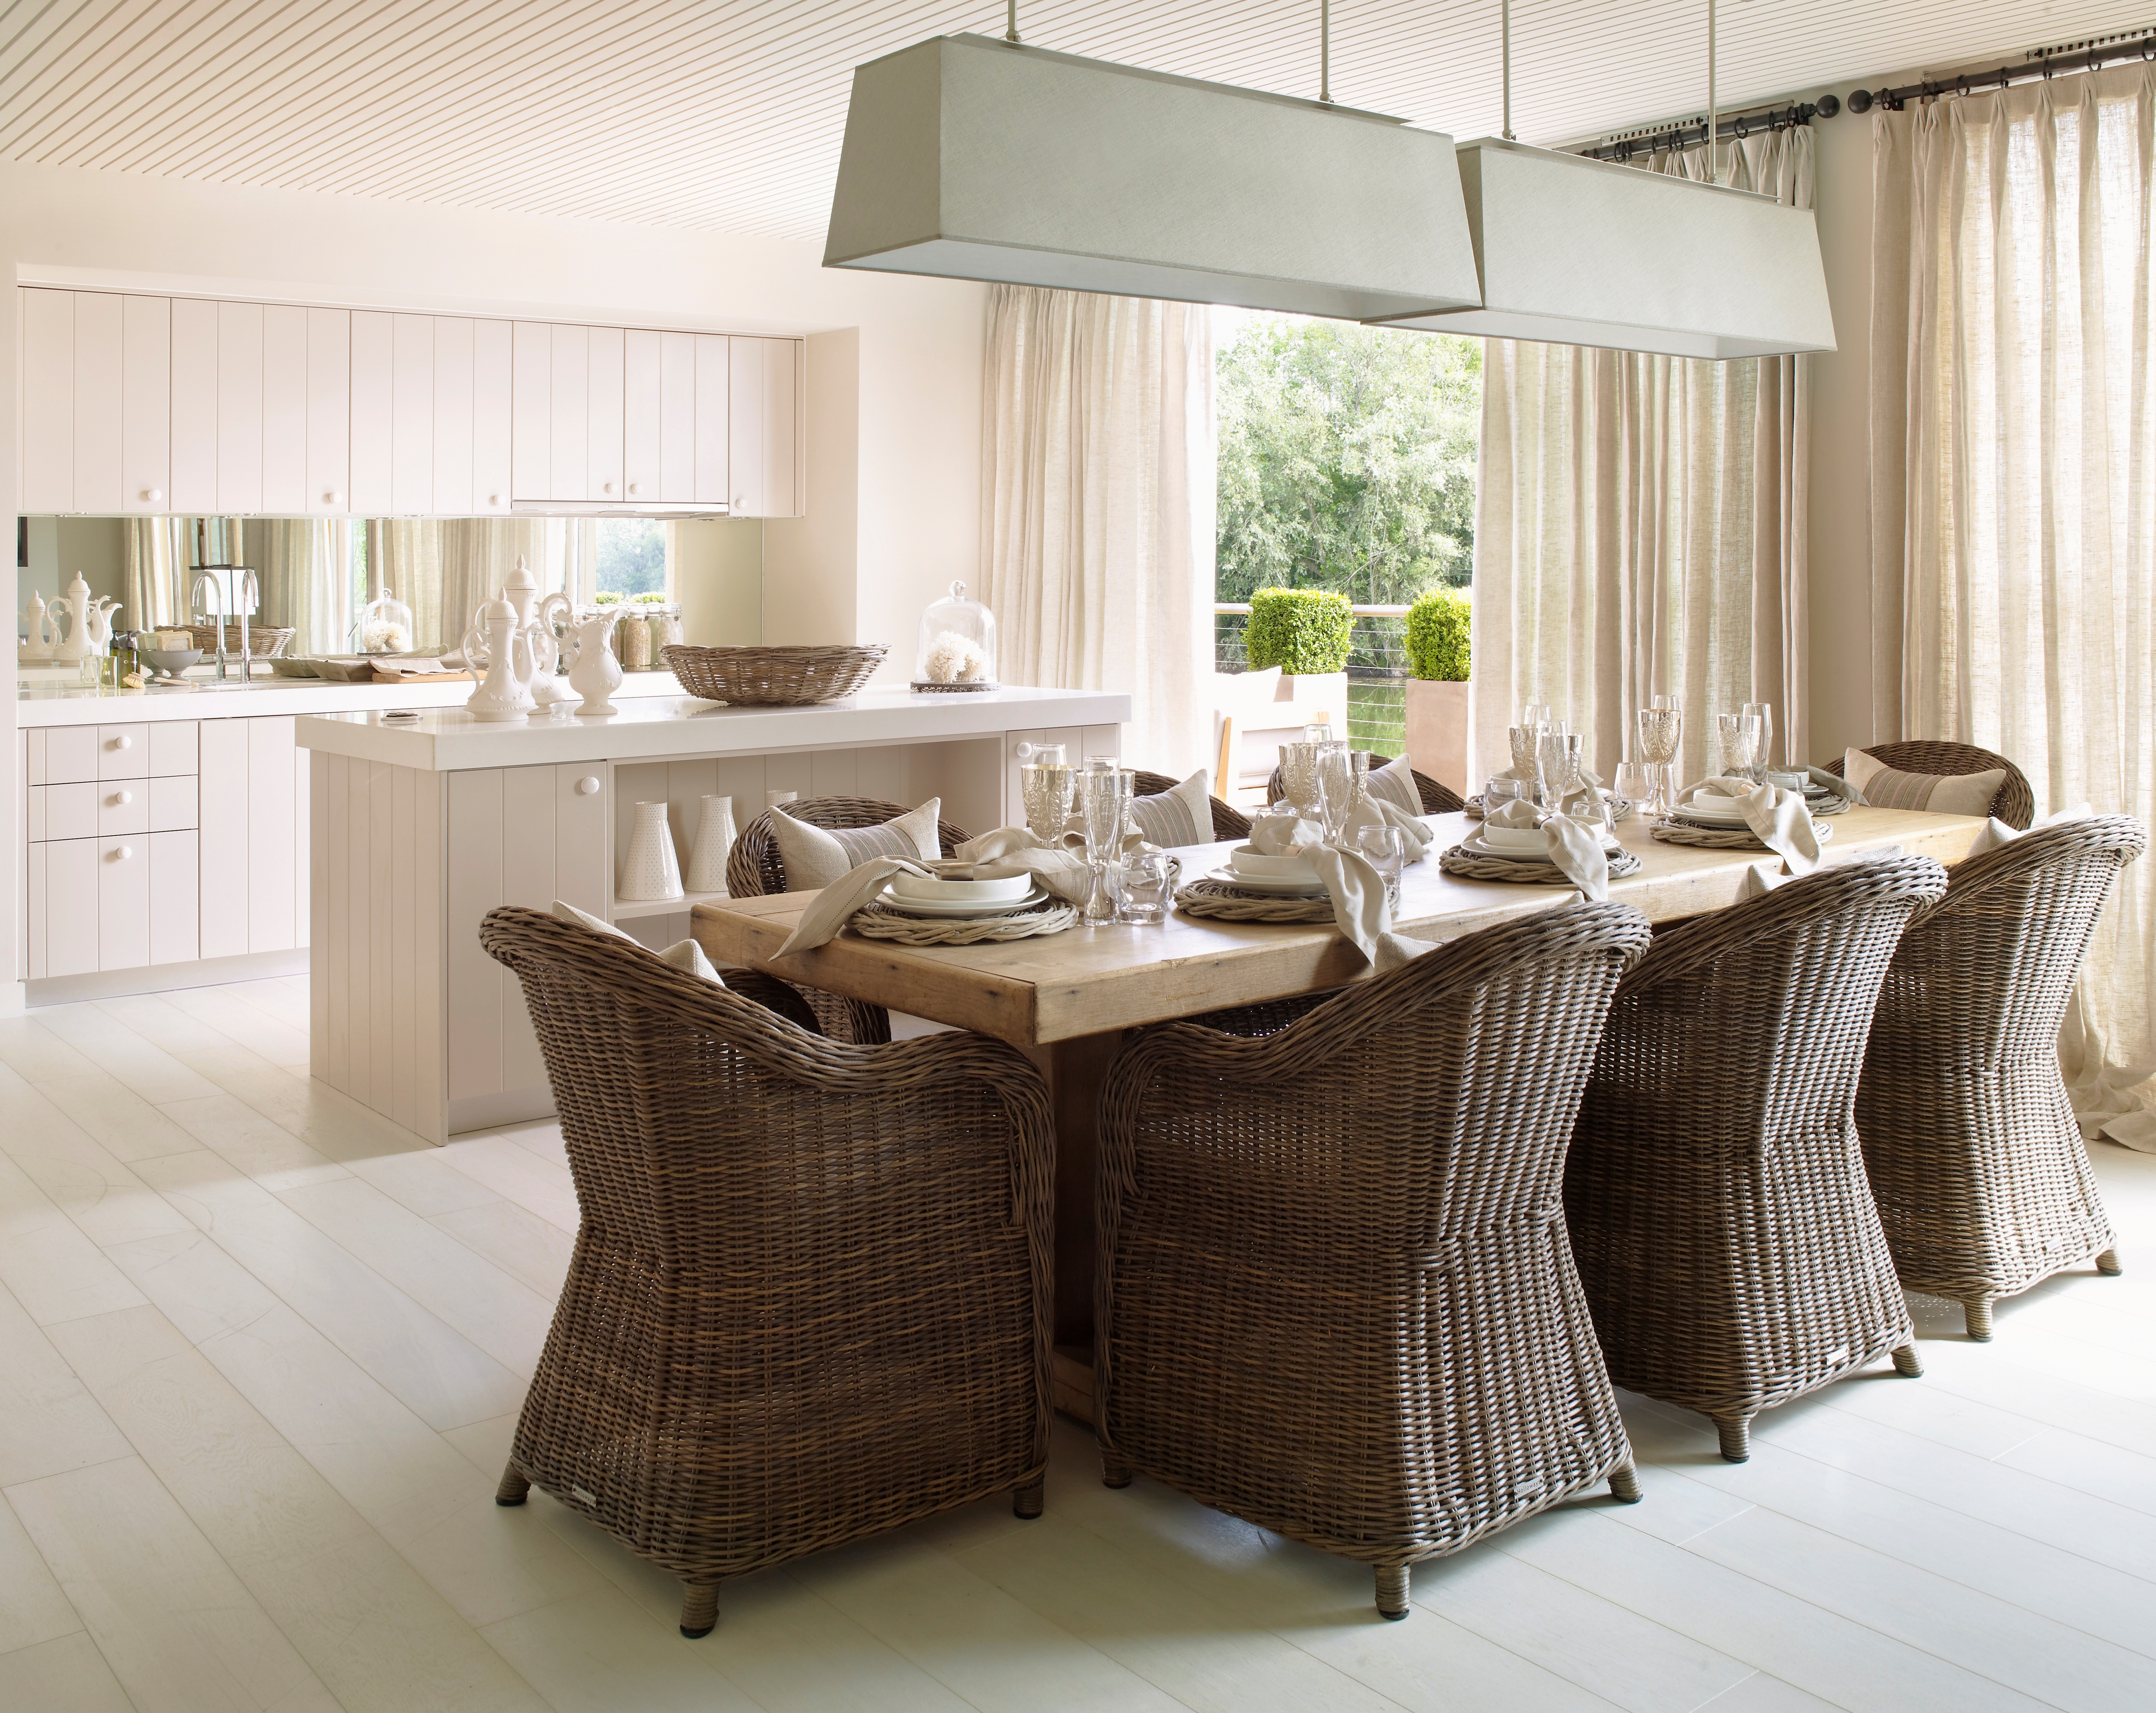 Kelly Hoppen Kitchen Designs Kelly Hoppen For Yoo At The Lakes By Yoo Kitchendining Area Www